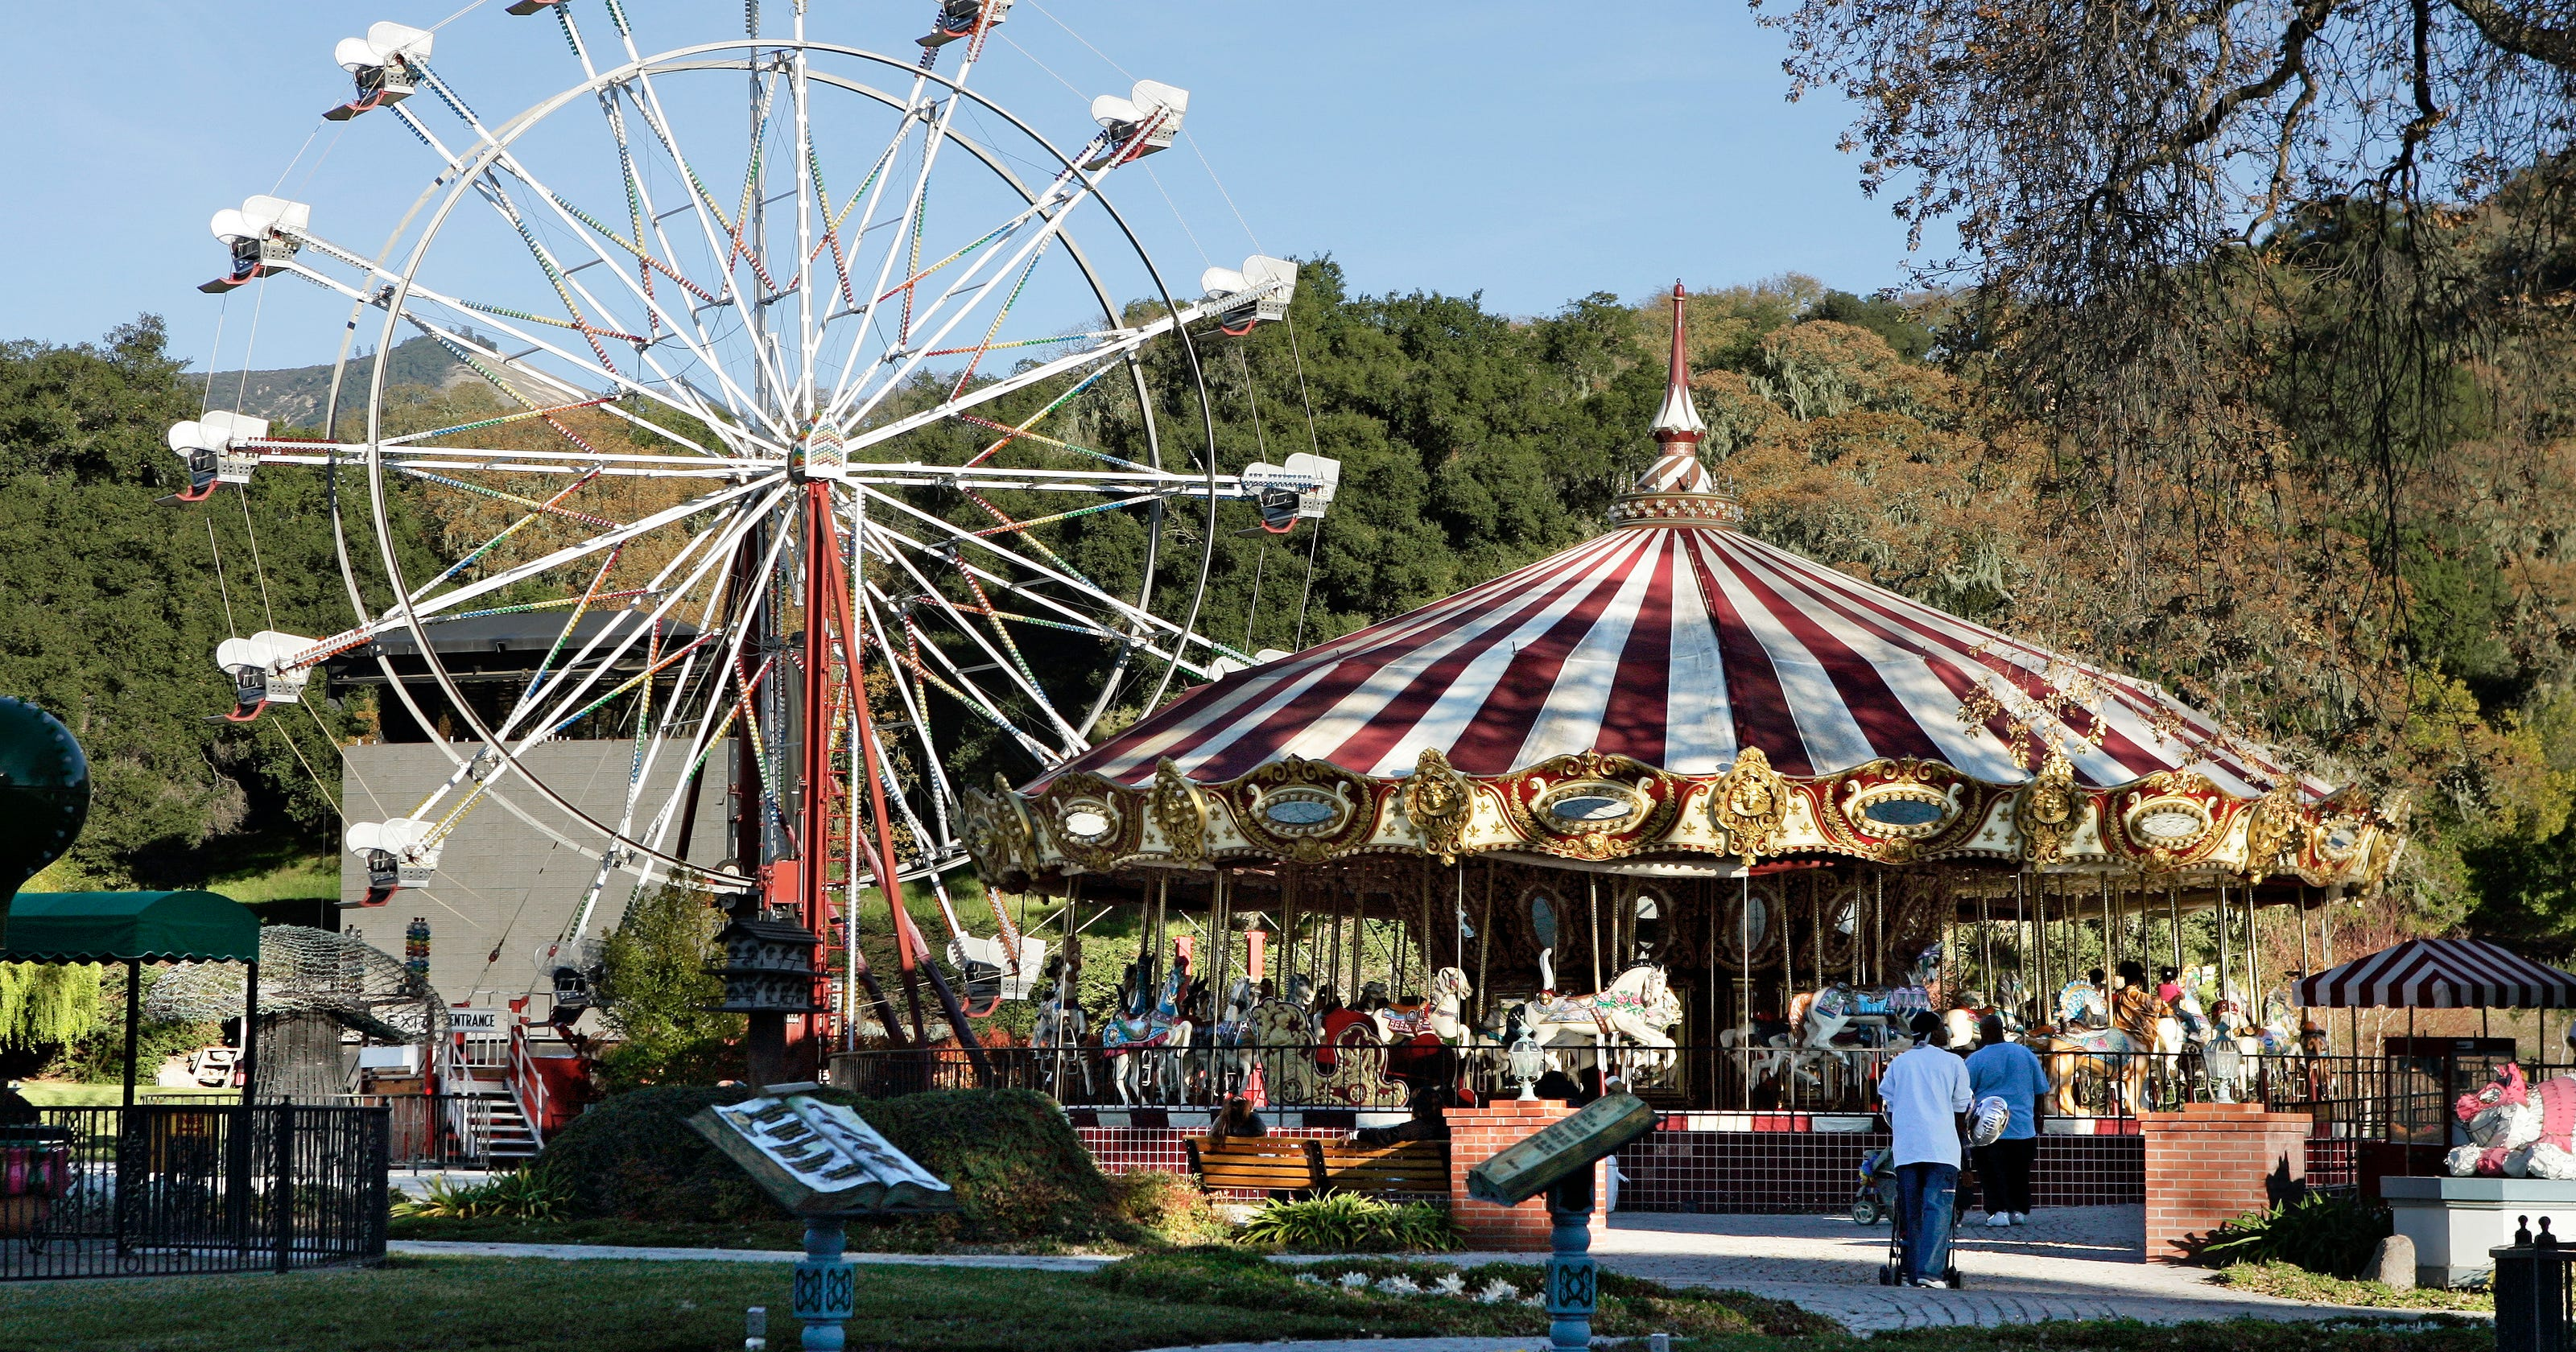 Michael Jackson's Neverland Ranch to be no more